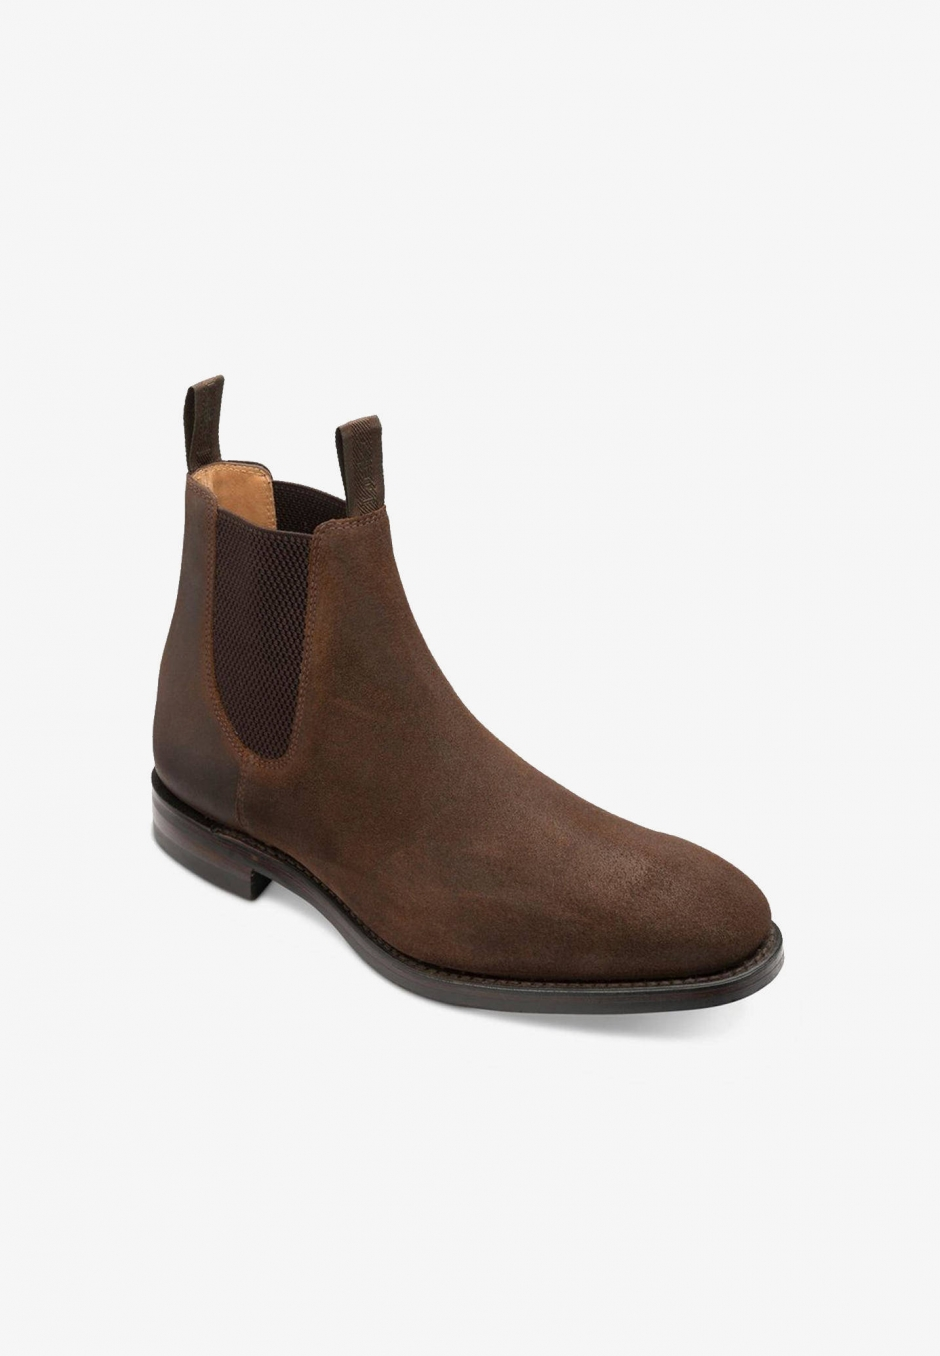 Loake Chatsworth Brown Waxy Suede